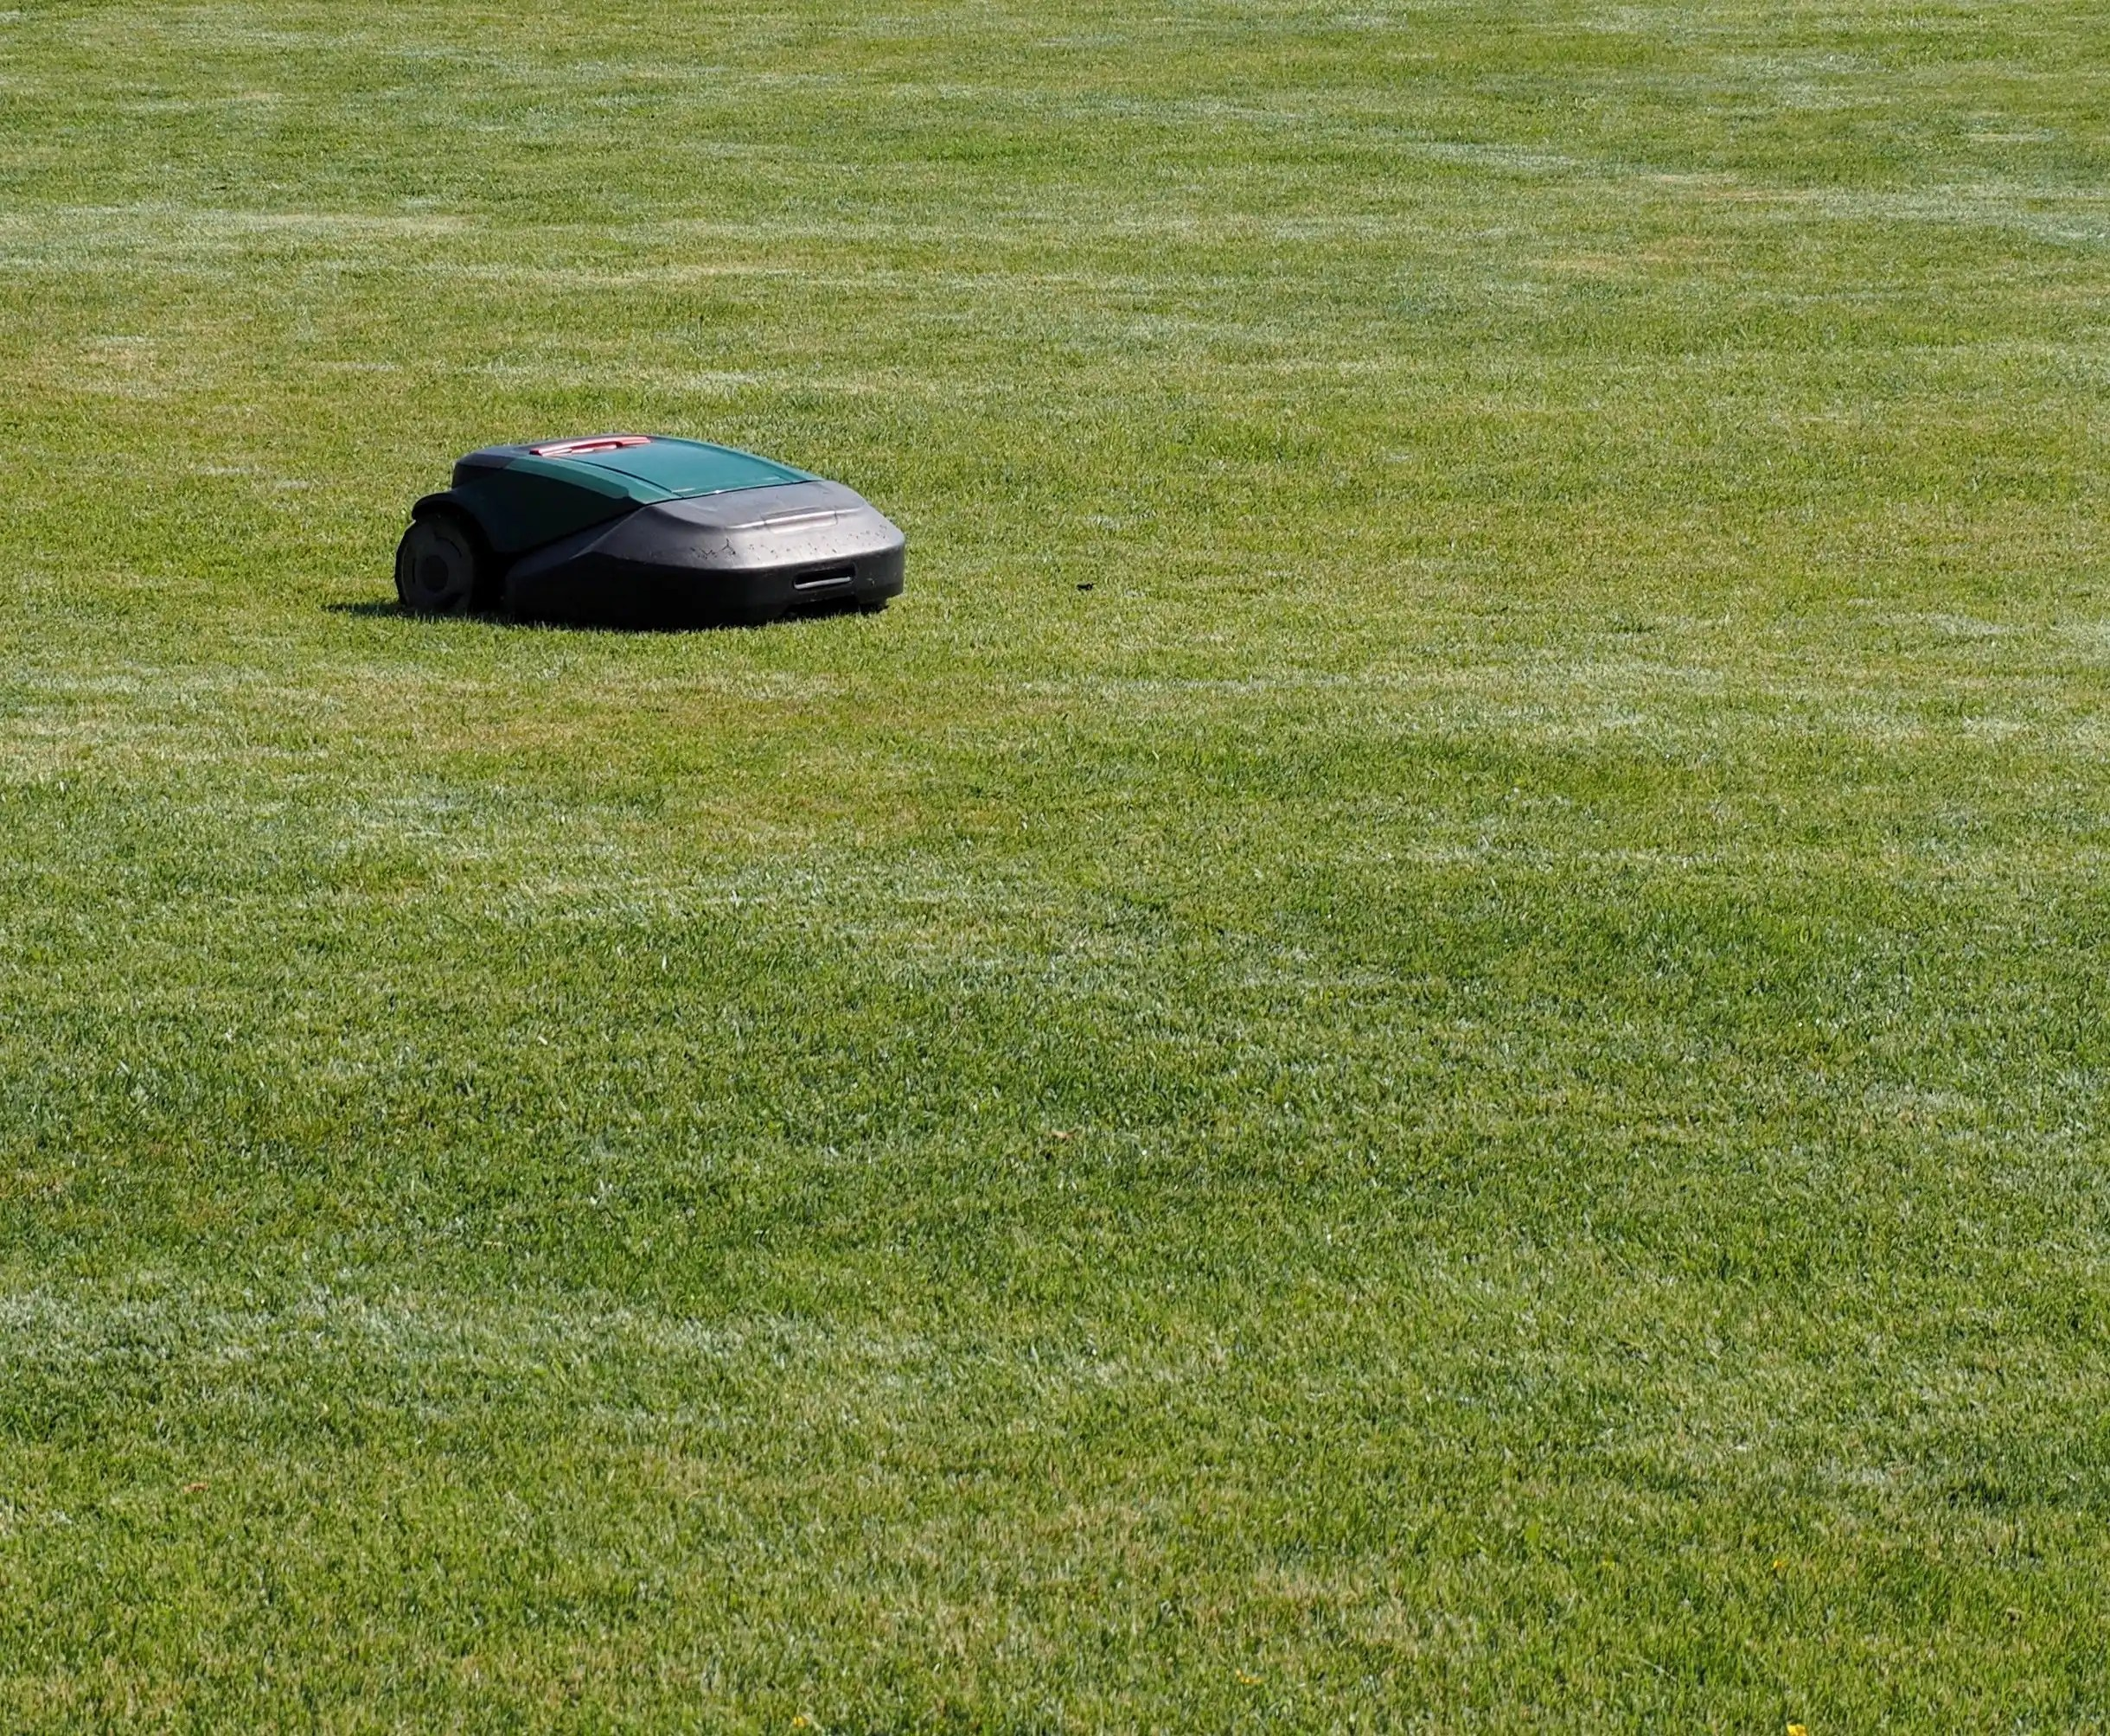 robot lawn mower cutting large lawn